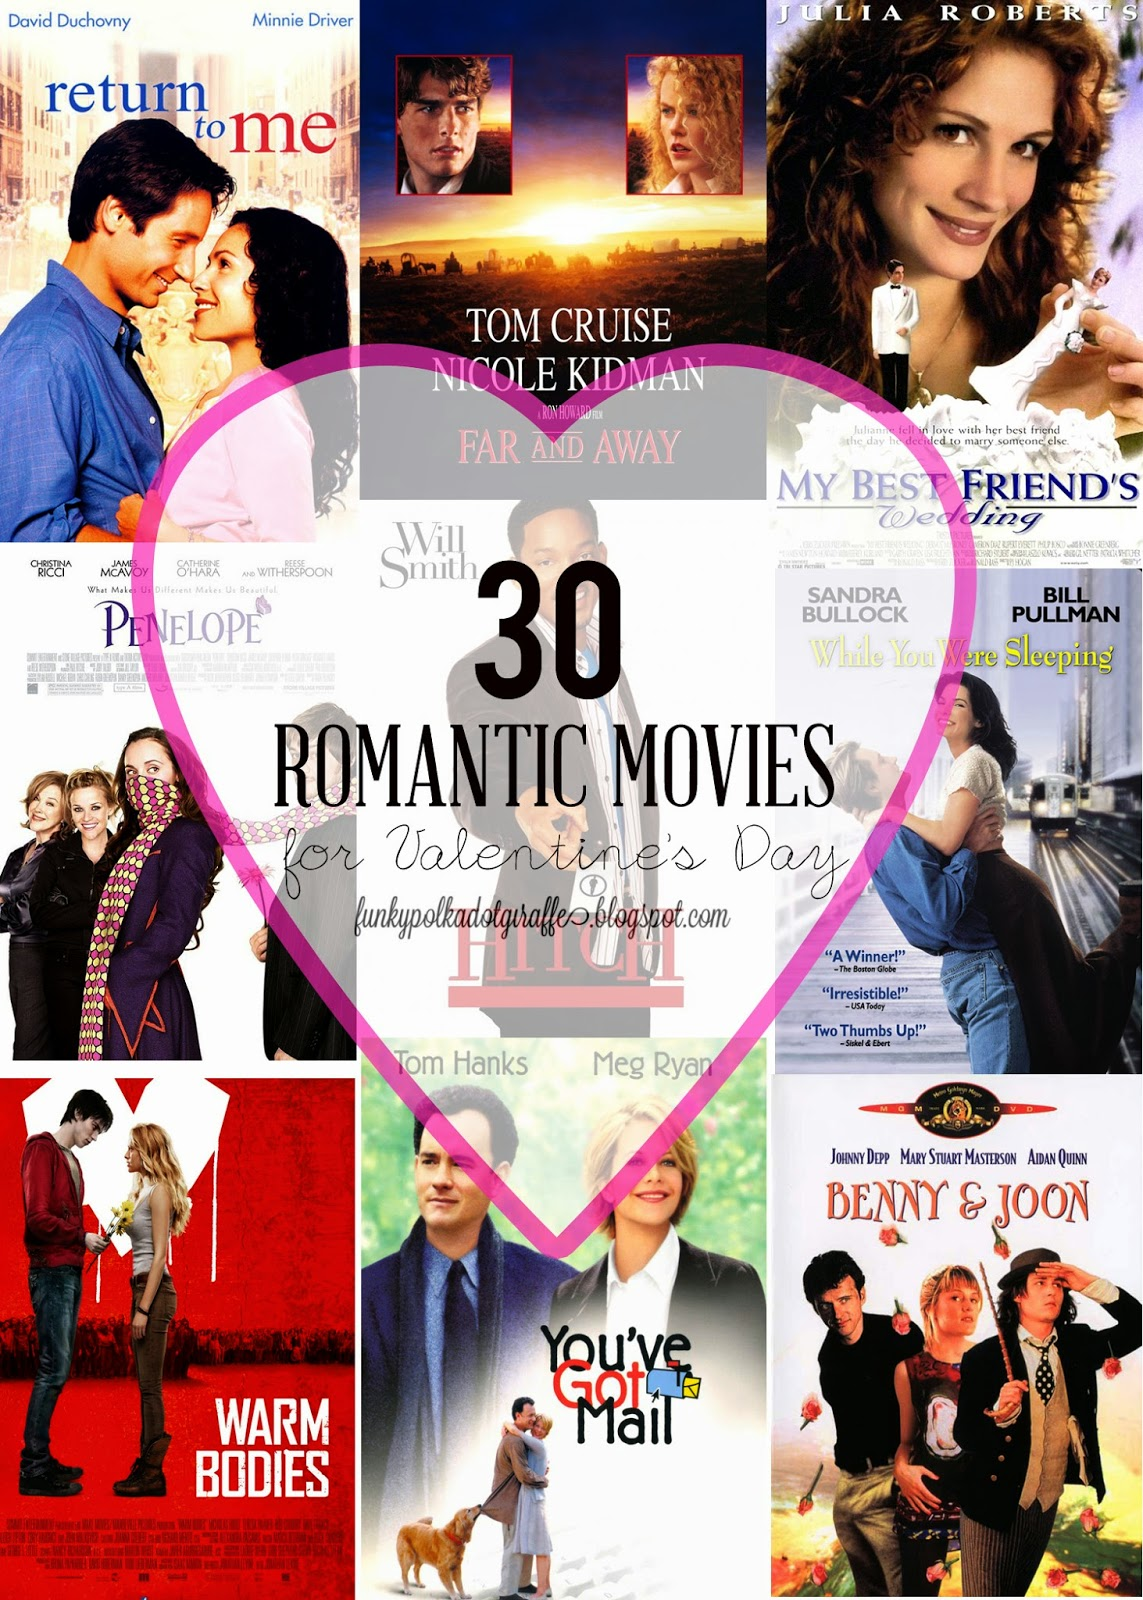 23 Valentine's Day Movies People Never Get Bored Of